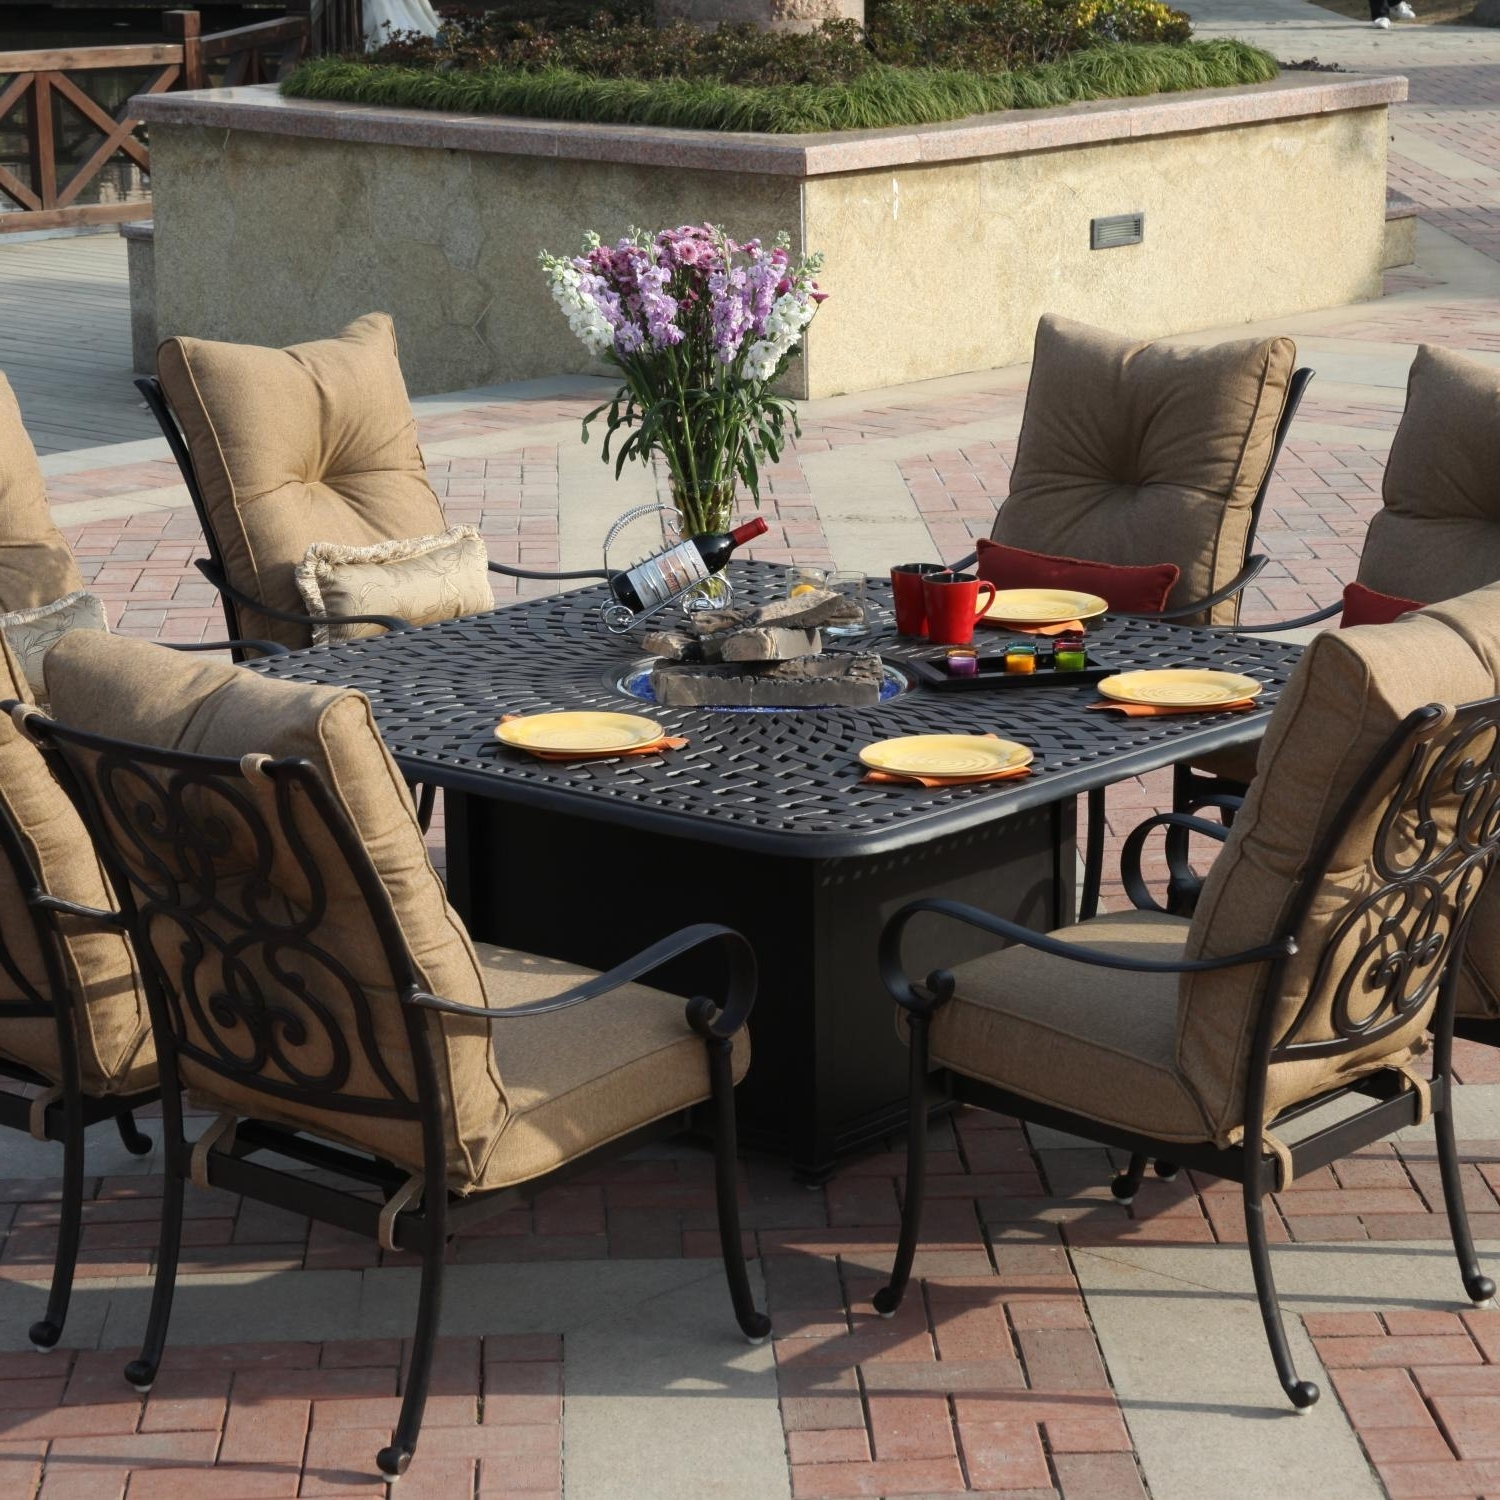 New Fire Pit Set Propane Conversation Sets Fire Pit Chat Set Throughout Well Known Patio Conversation Sets With Fire Table (View 11 of 15)